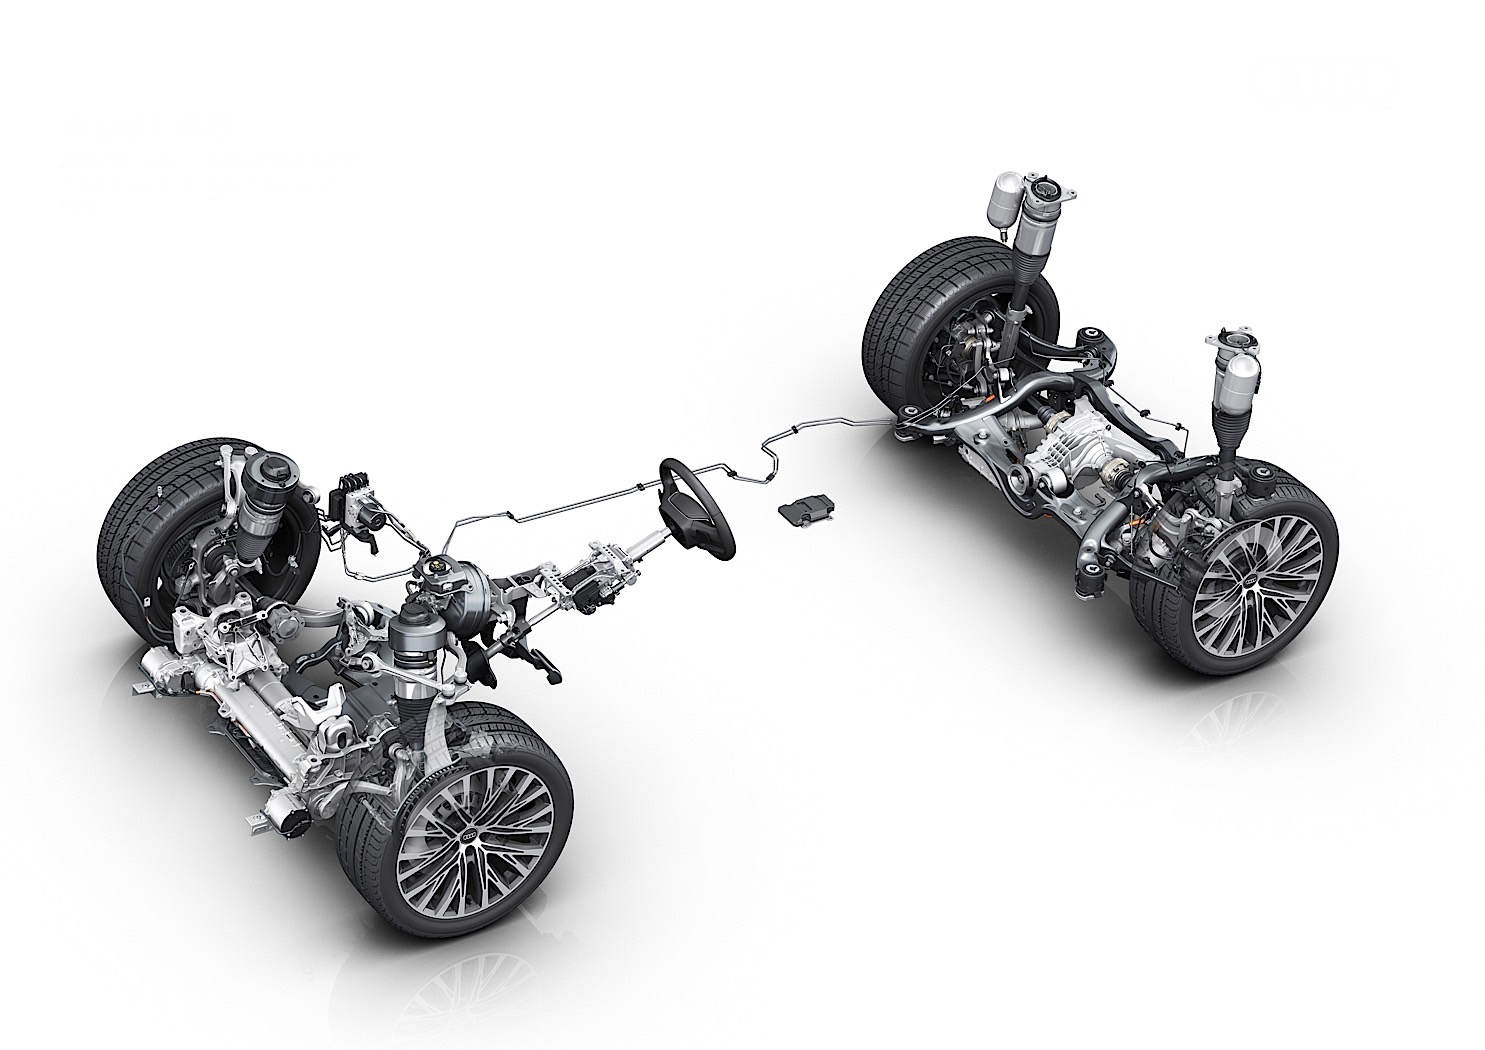 Audi Demonstrates Active Suspension System Of The Next-Generation A8 Saloon